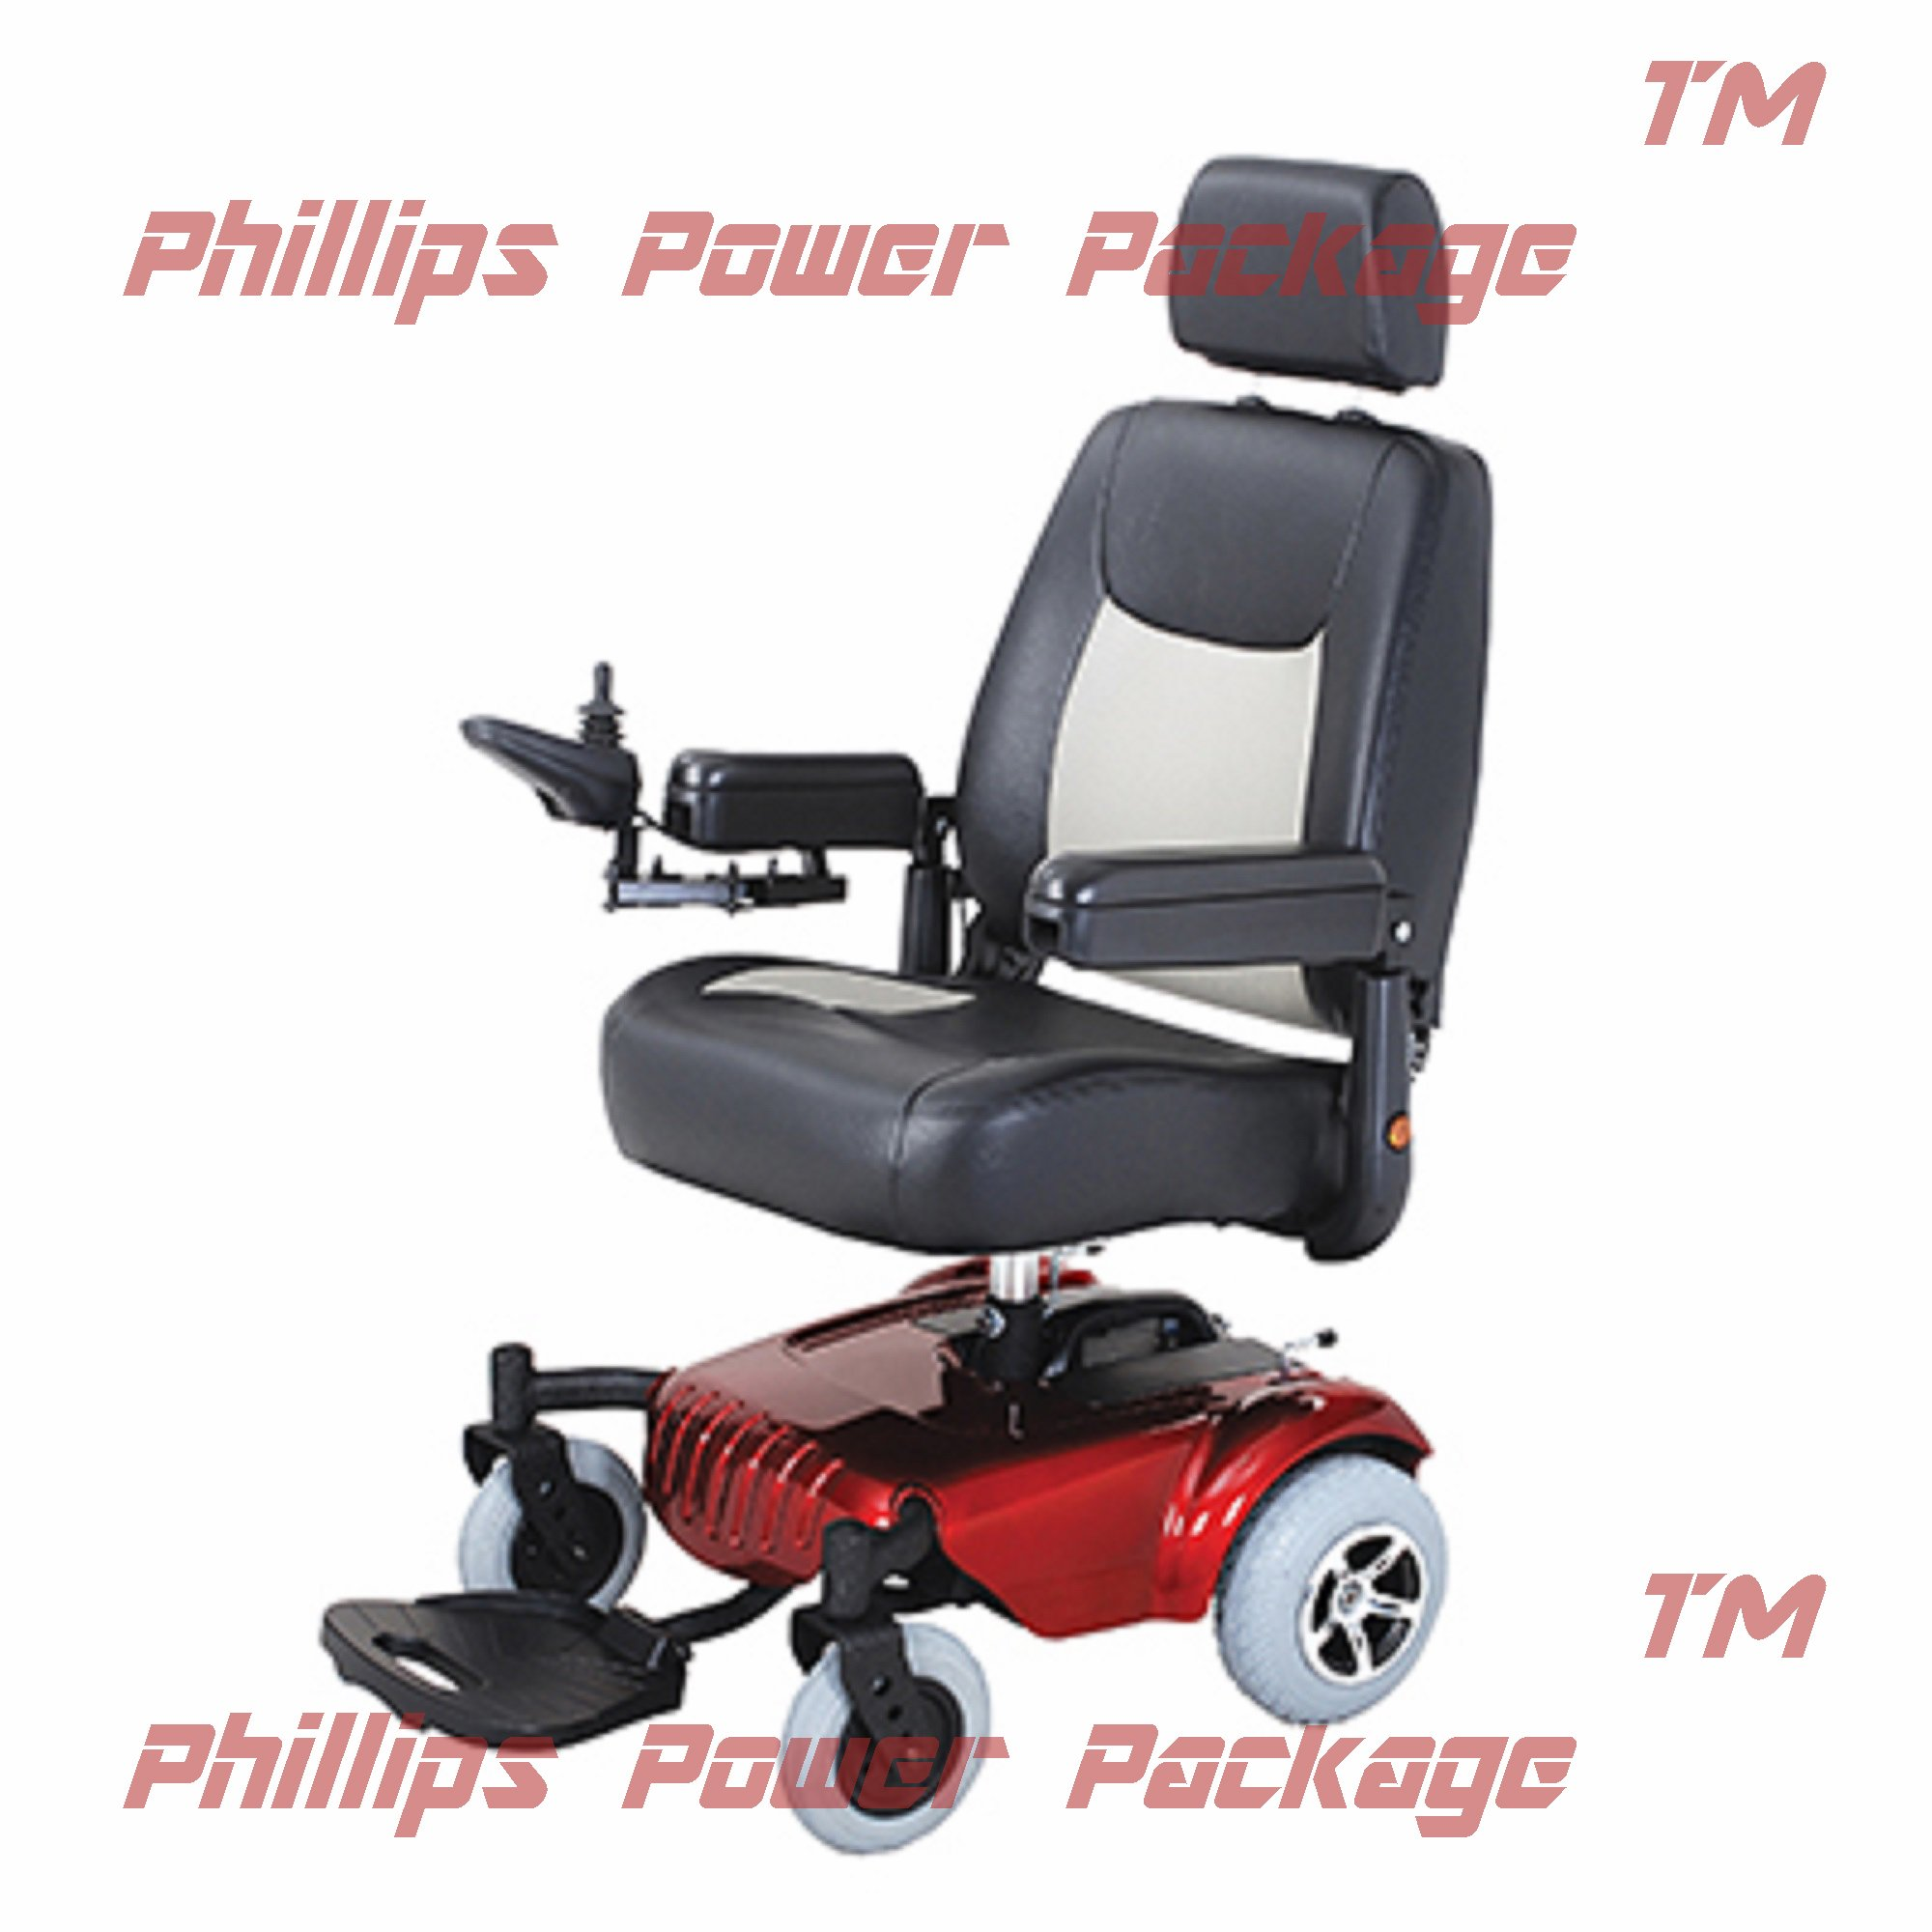 Merits Health Products - Junior - Super Light Mini RWD Power Chair - 19''W x 18''D - Red - PHILLIPS POWER PACKAGE TM - TO $500 VALUE